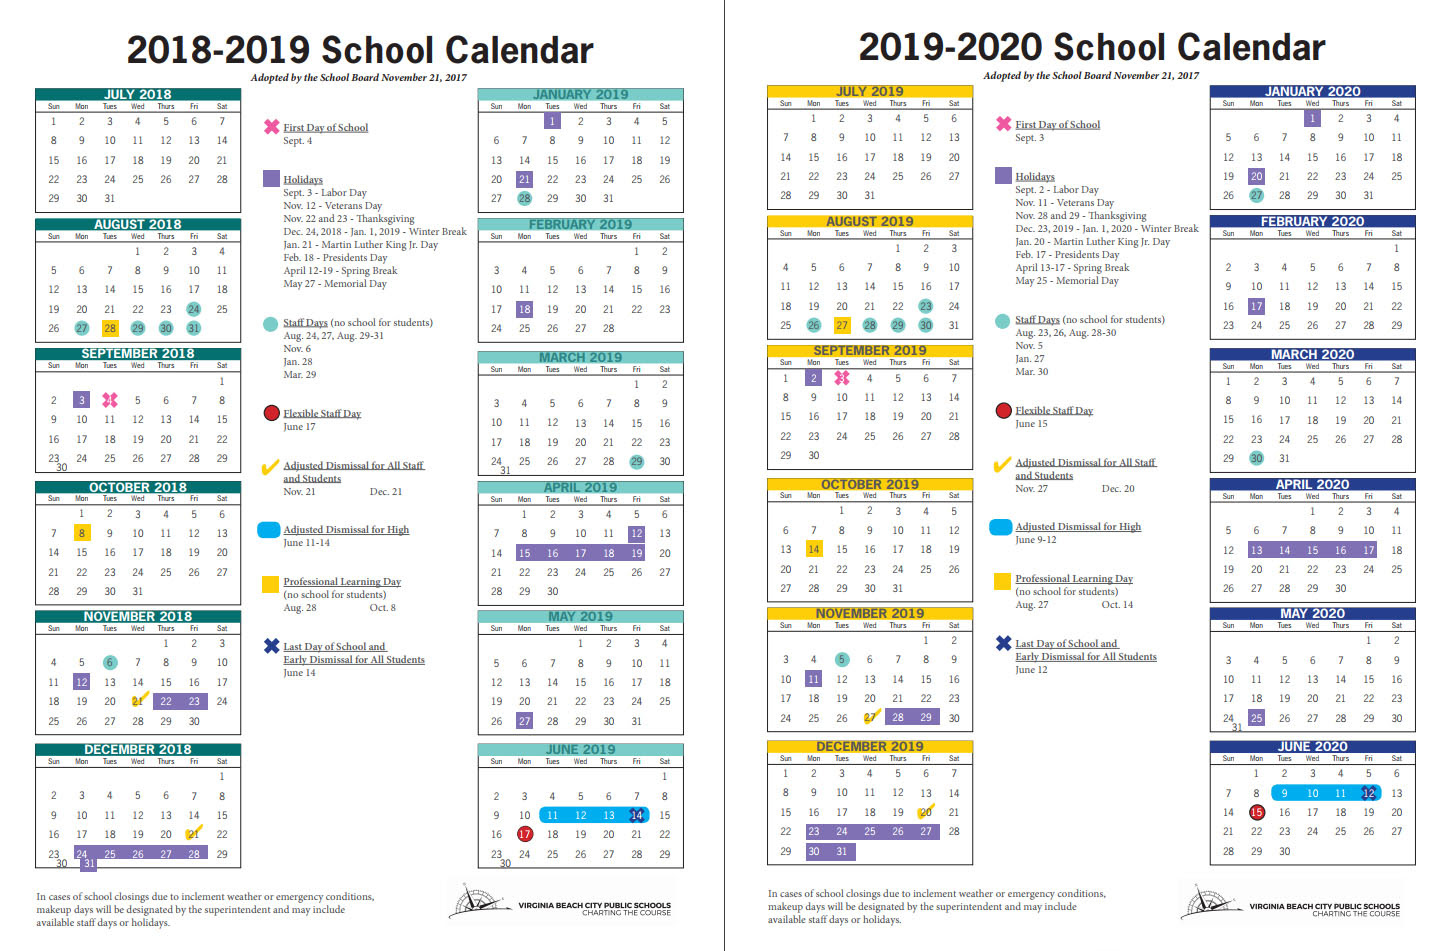 Virginia Beach Public Schools Calendar 2020 Two years of school calendars, with 181 instructional days, okayed